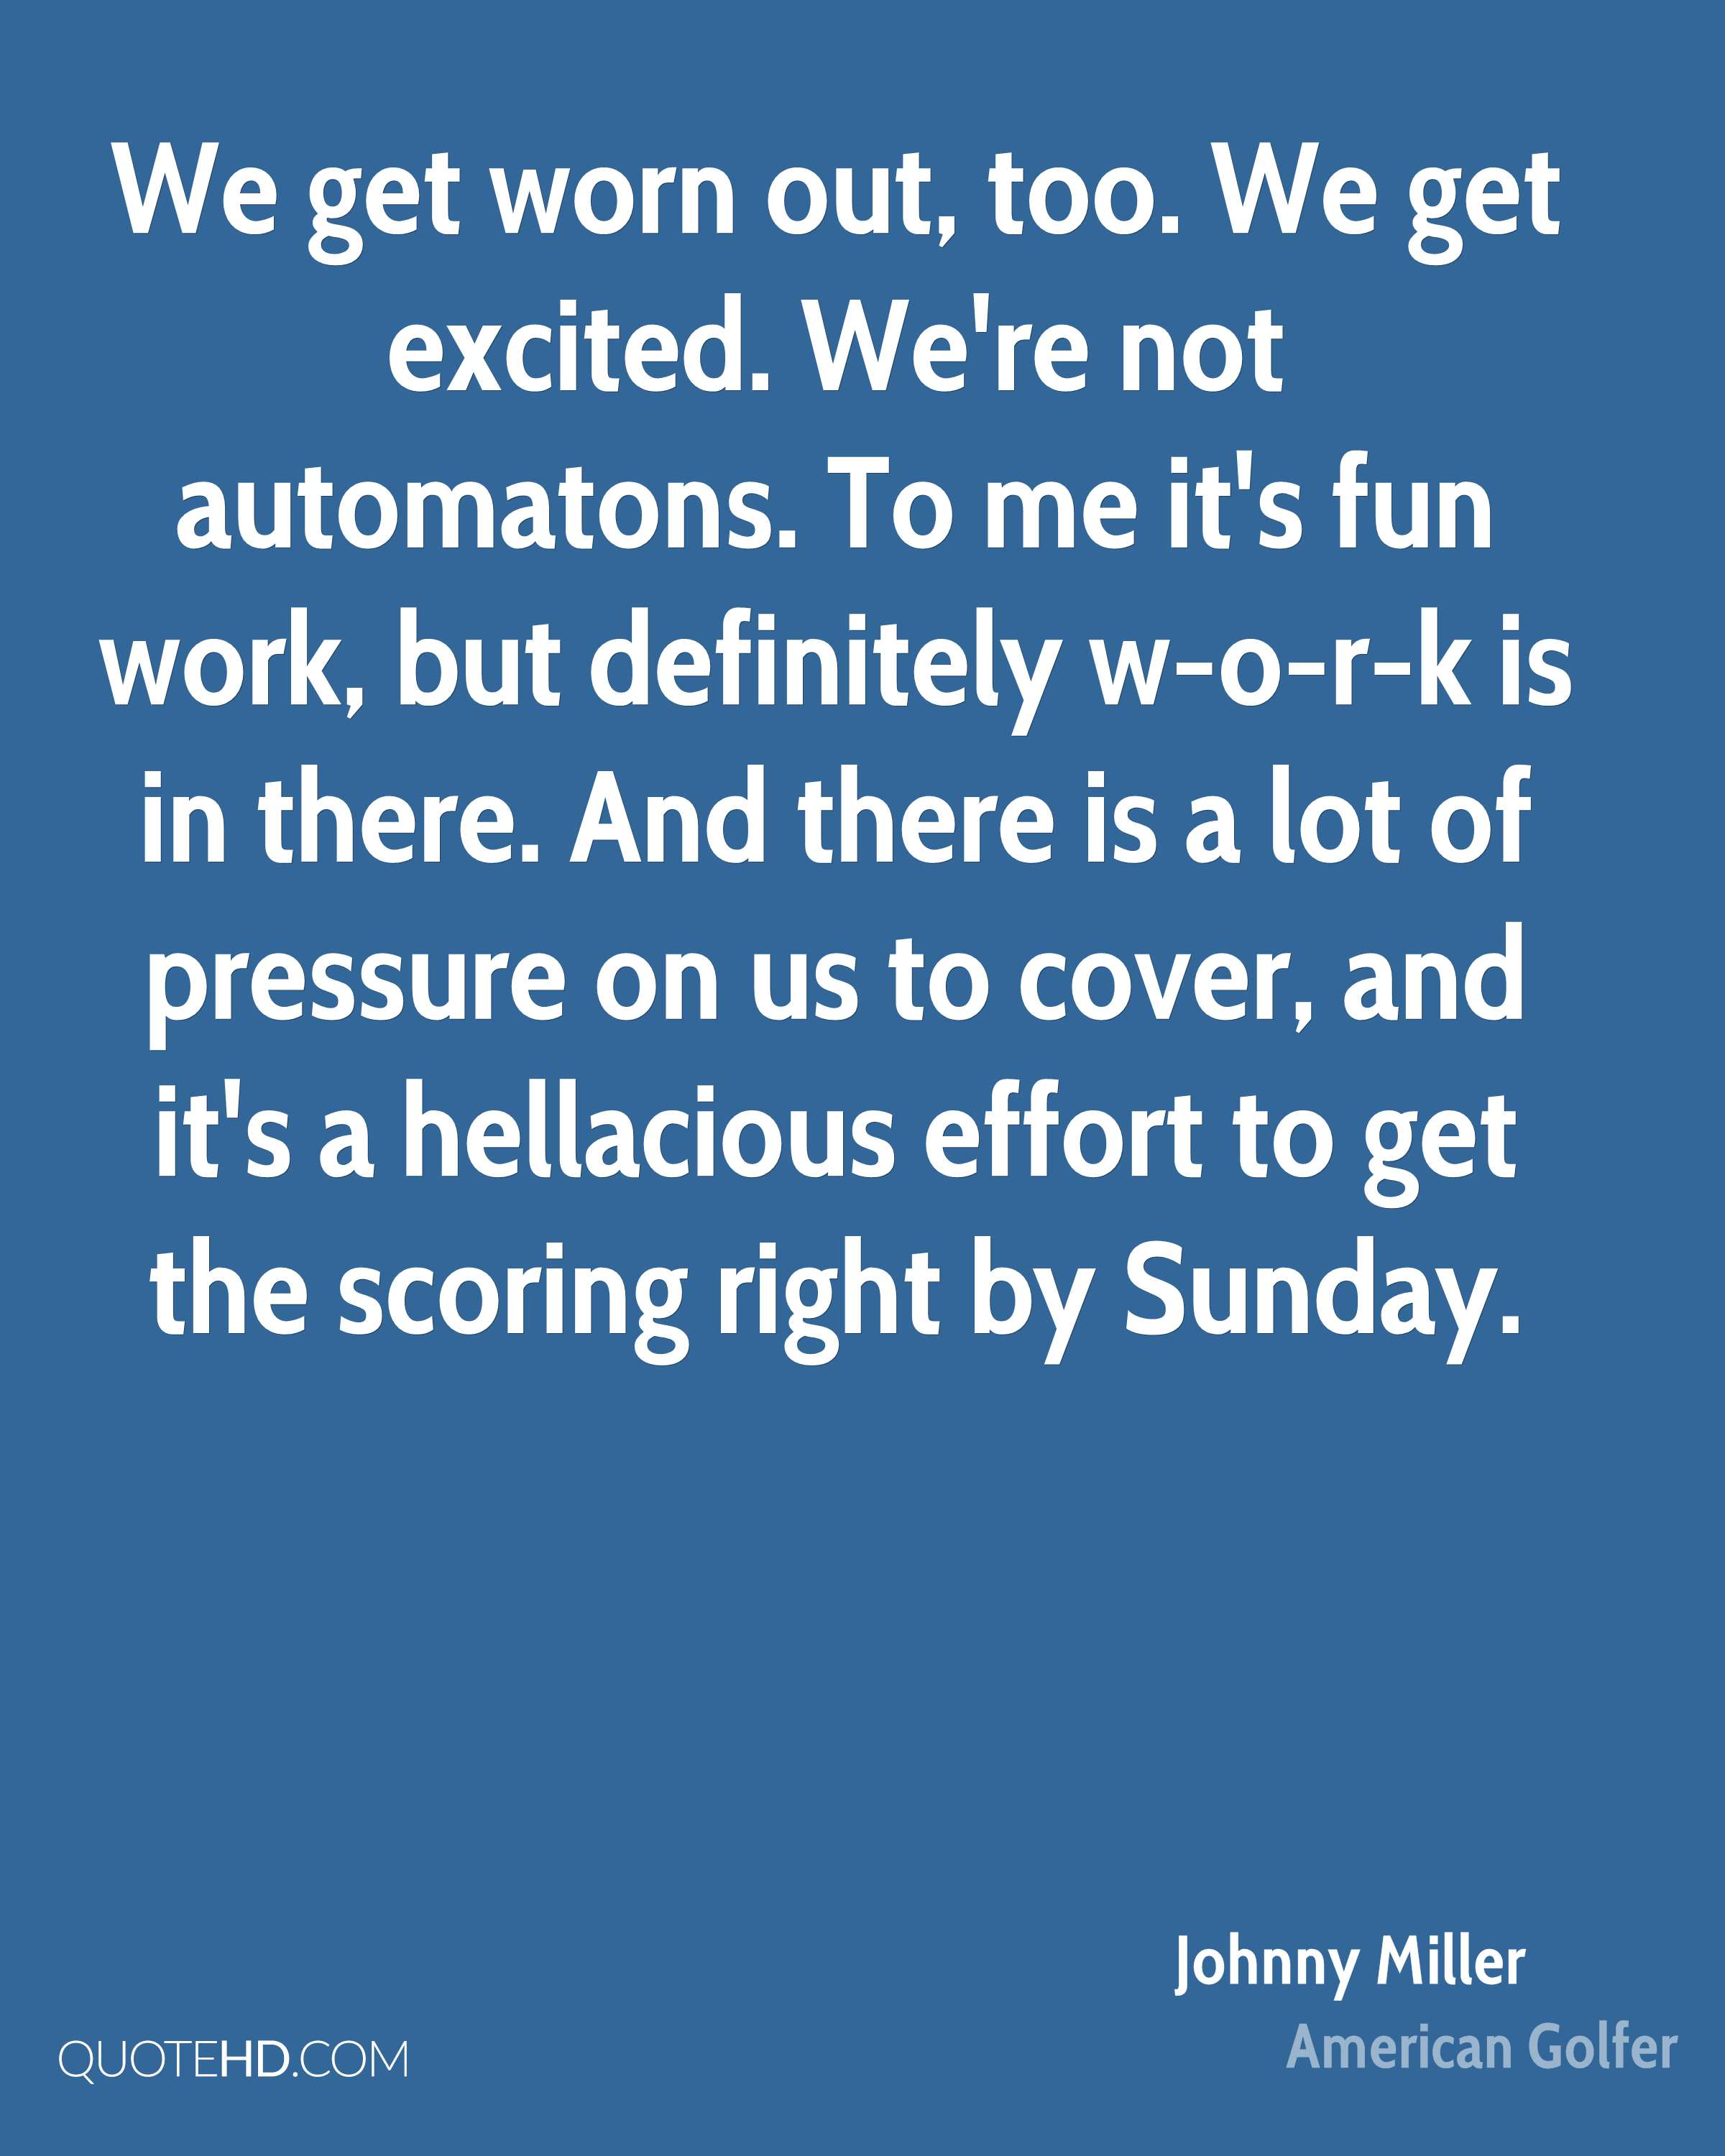 We get worn out, too. We get excited. We're not automatons. To me it's fun work, but definitely w-o-r-k is in there. And there is a lot of pressure on us to cover, and it's a hellacious effort to get the scoring right by Sunday.